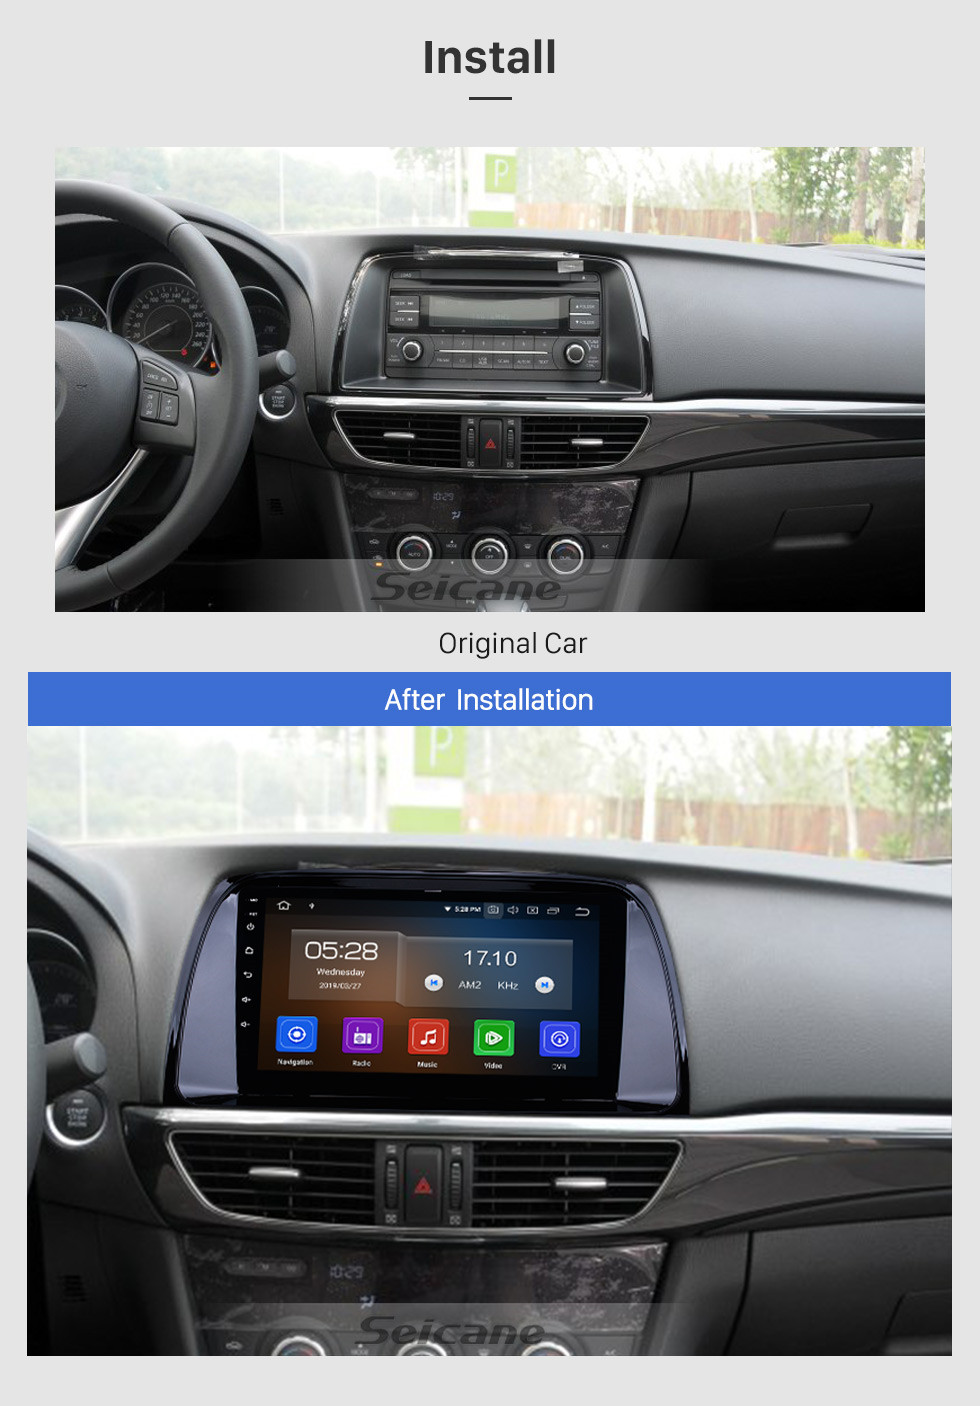 Seicane 9 Inch OEM Android 9.0 Radio GPS Navigation system For 2012 2013 2014 2015 MAZDA CX-5 with Bluetooth Capacitive Touch Screen TPMS DVR OBD II Rear camera AUX 3G WiFi HD 1080P Video Headrest Monitor Control USB SD